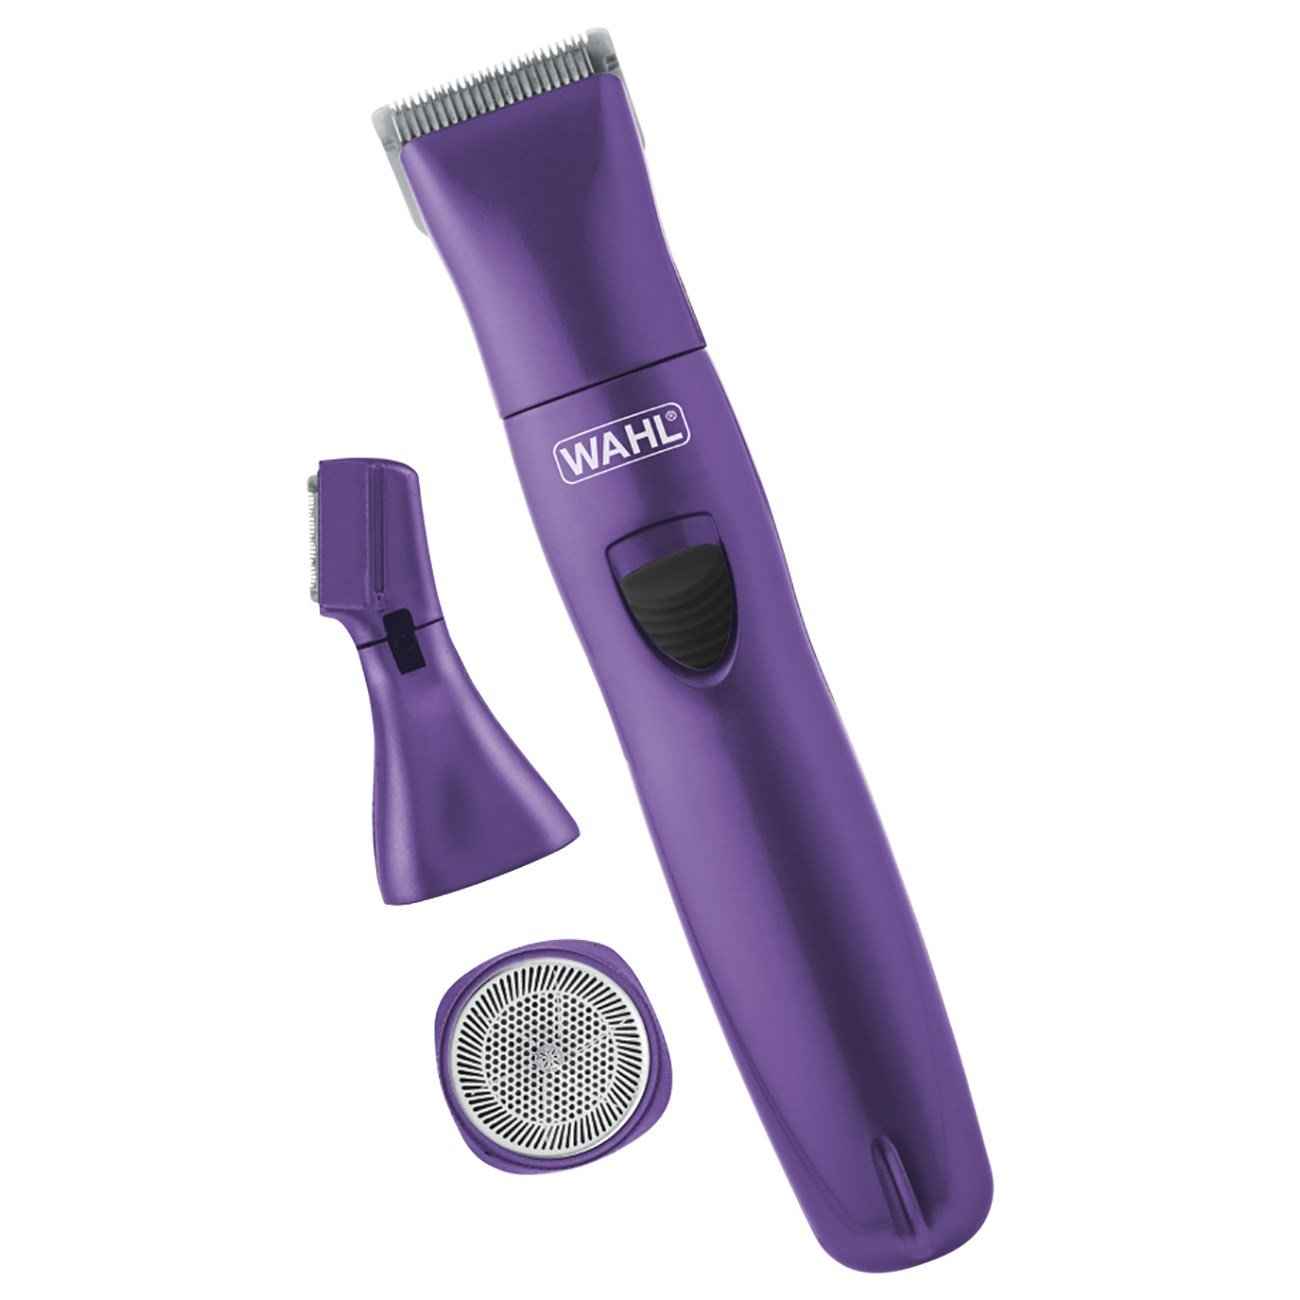 Wahl 9865-100 Delicate Definitions Body Kit with Ladies Rechargeable Trimmer/Shaver/Detailer (Colors May Vary)